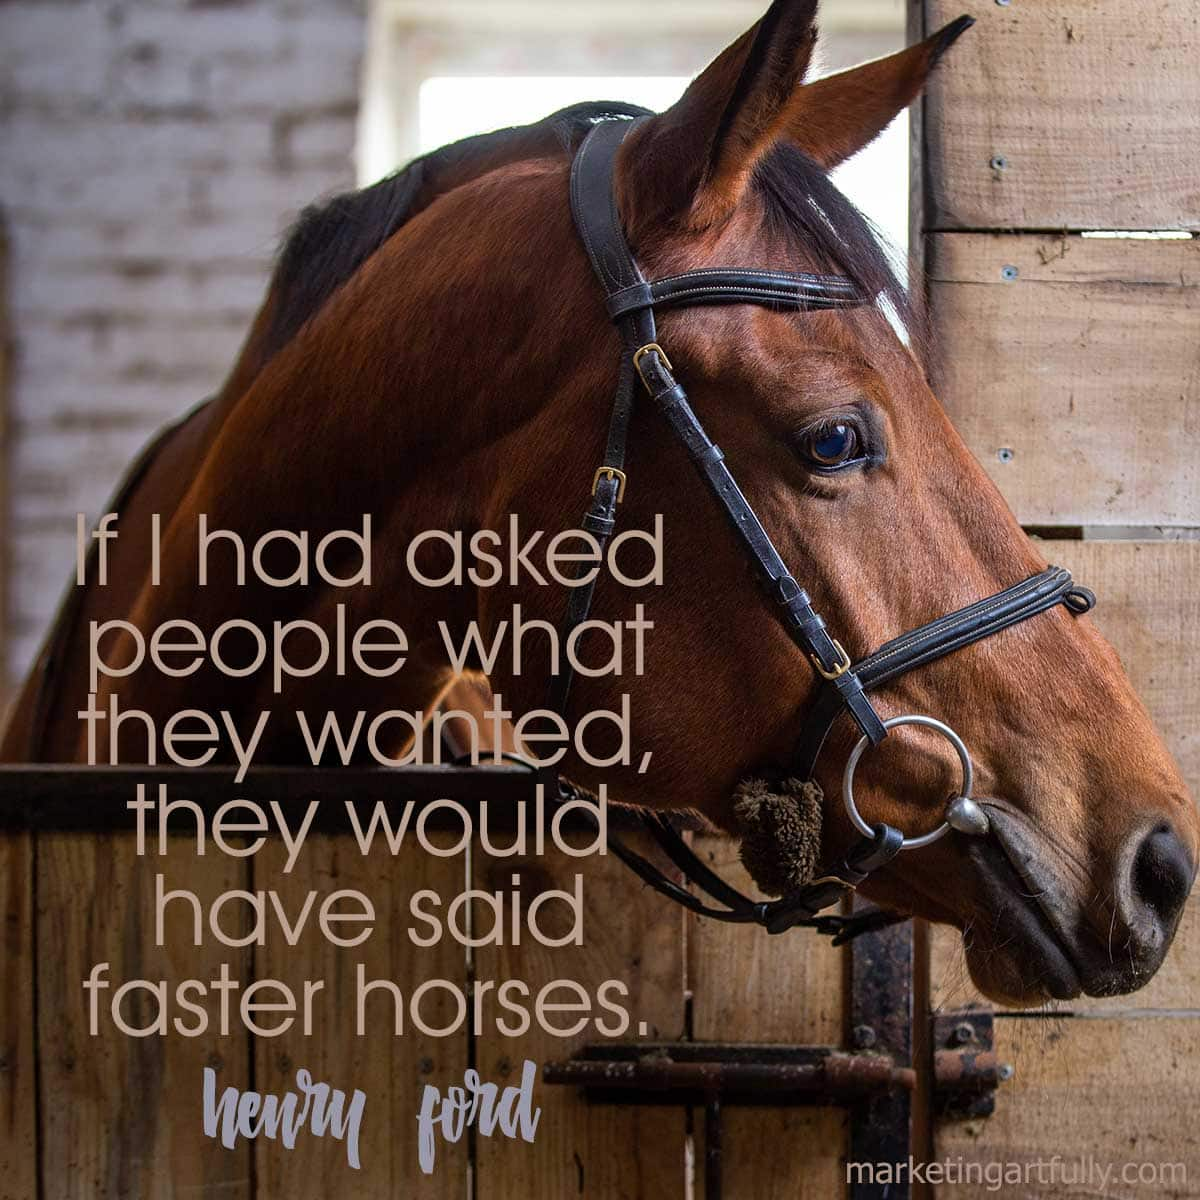 If I had asked people what they wanted, they would have said faster horses. Henry Ford